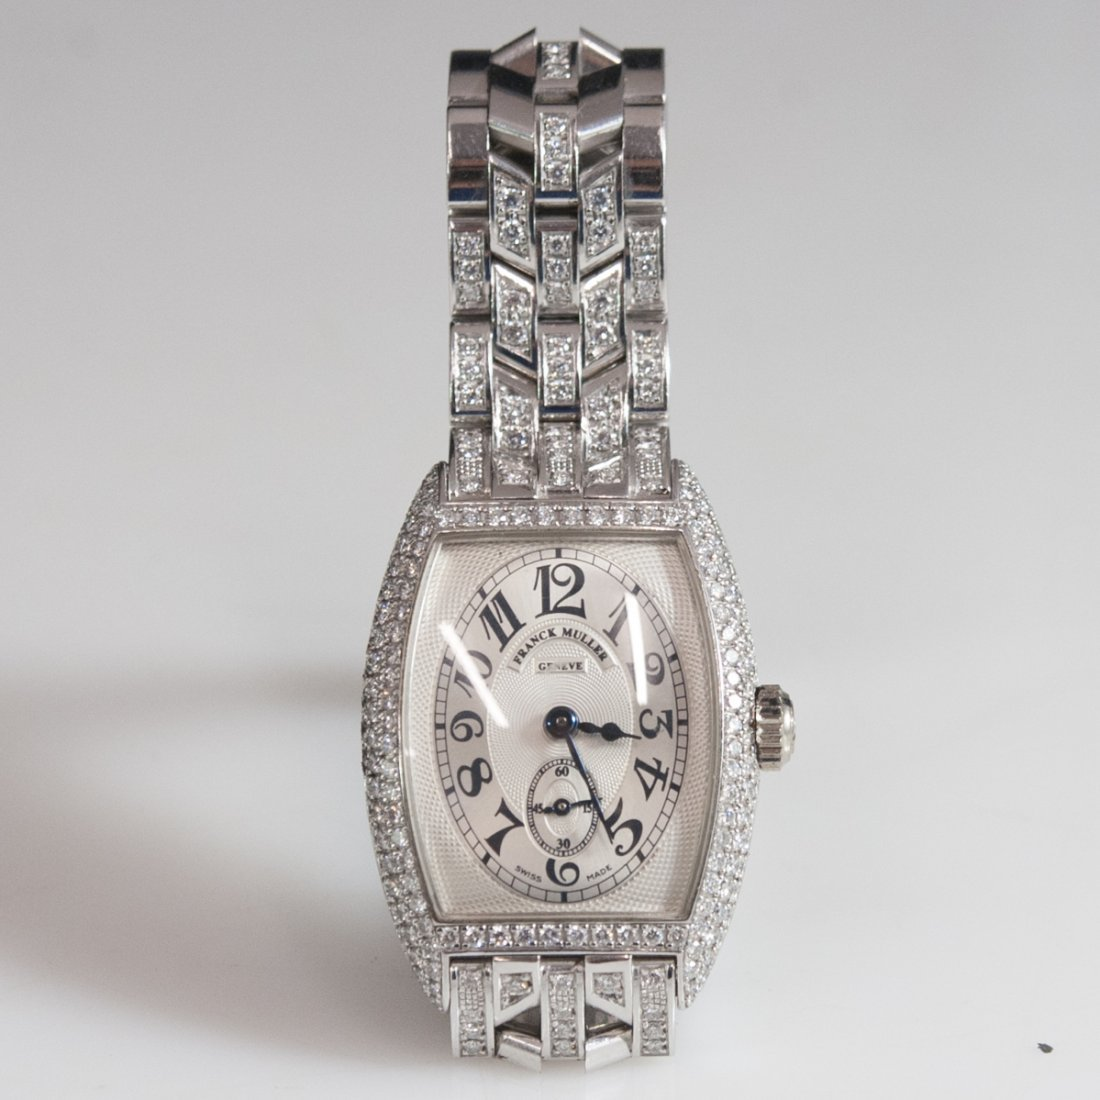 Franck Muller Chronometro 18kt Gold Diamond Watch